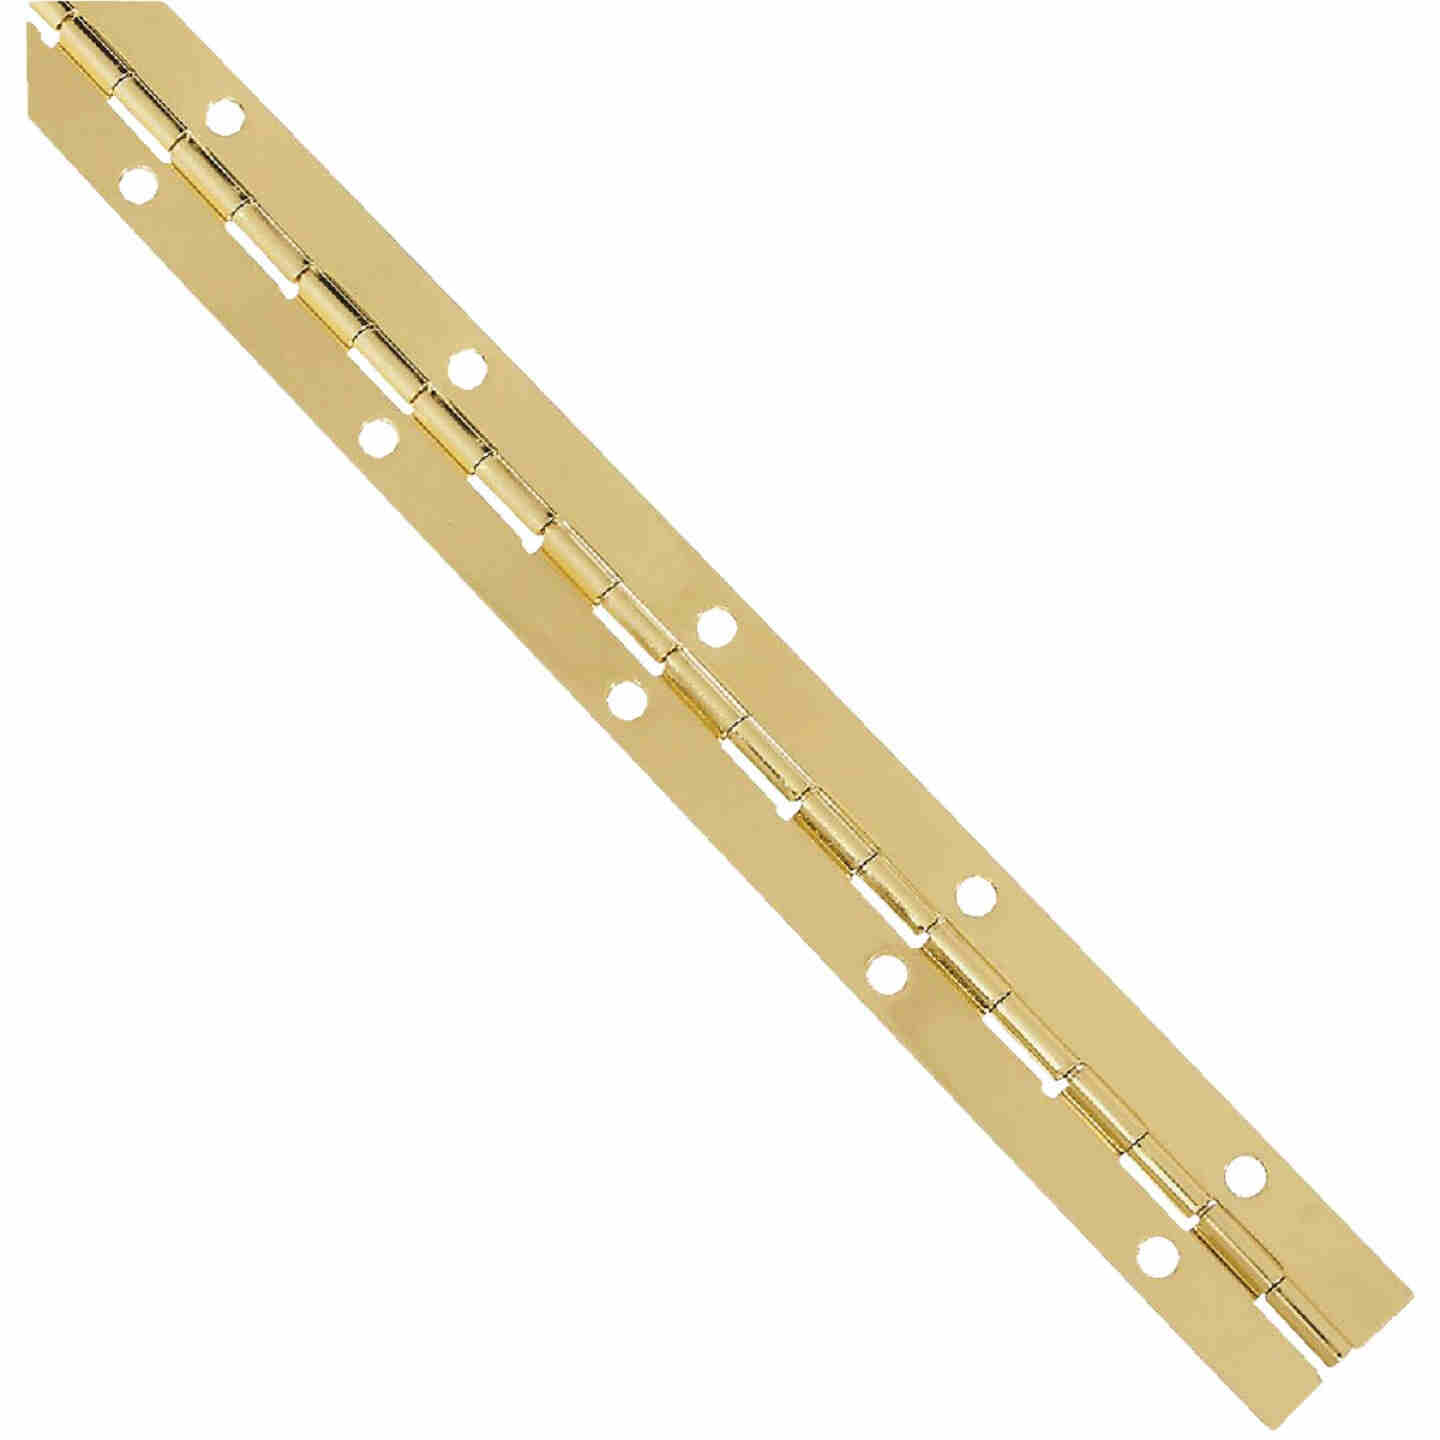 National Steel 1-1/16 In. x 12 In. Bright Brass Continuous Hinge Image 1